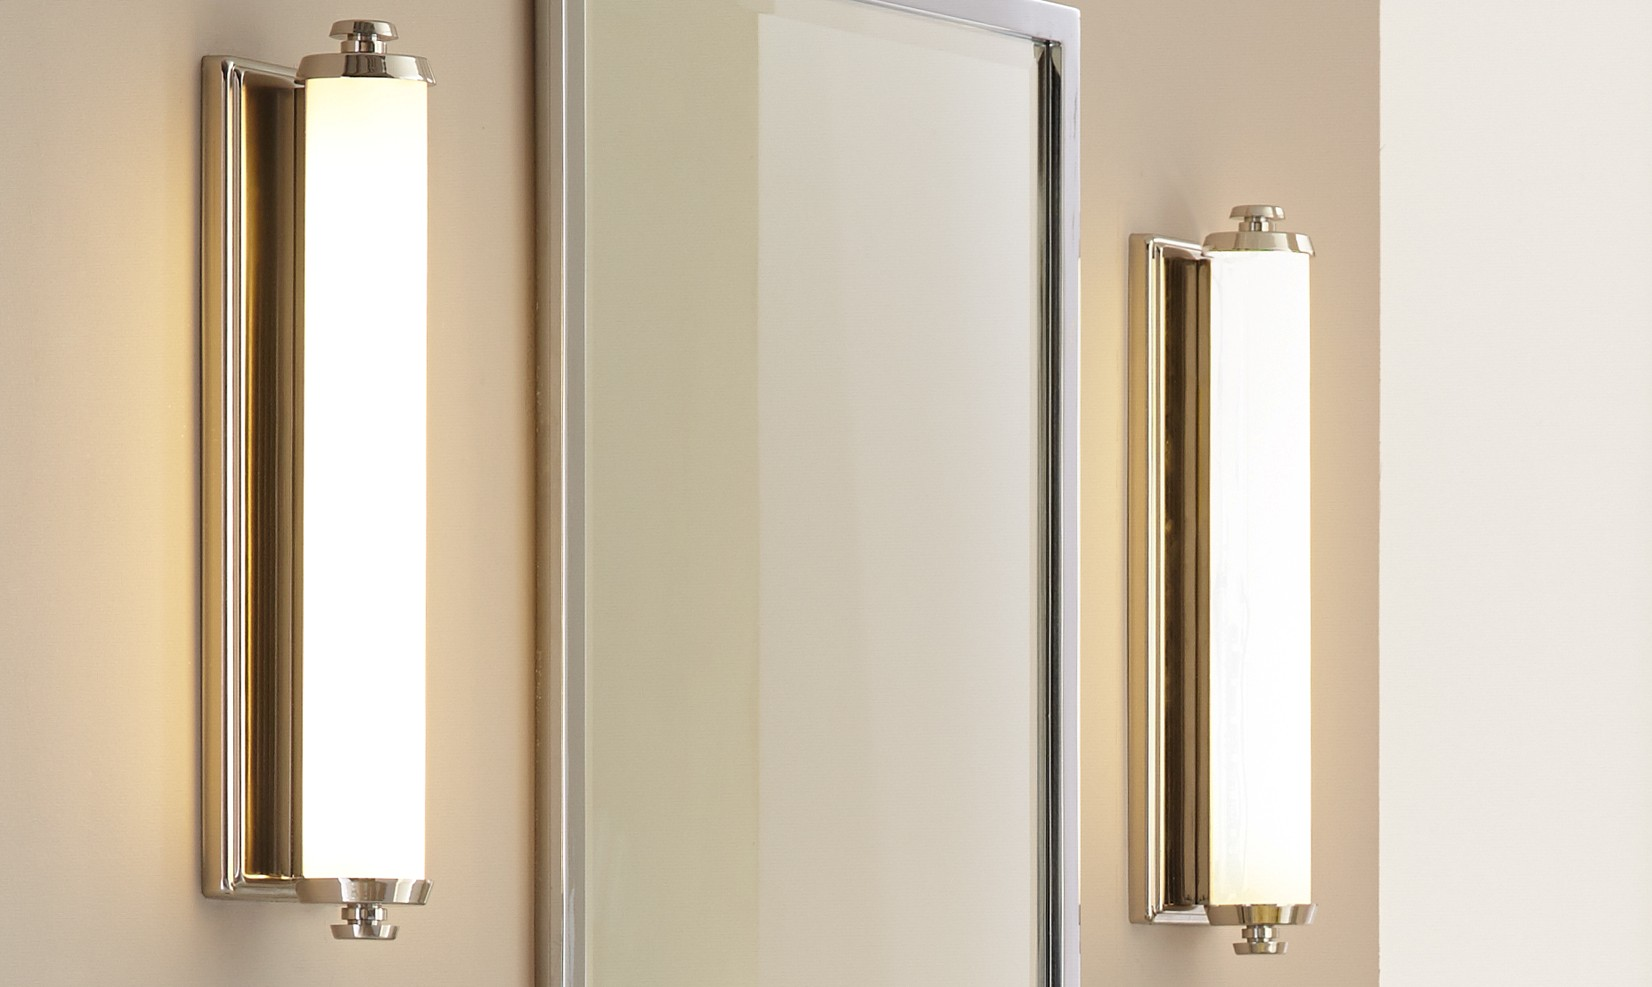 Bathroom Fixtures Lighting Fixtures Lighting World Inc